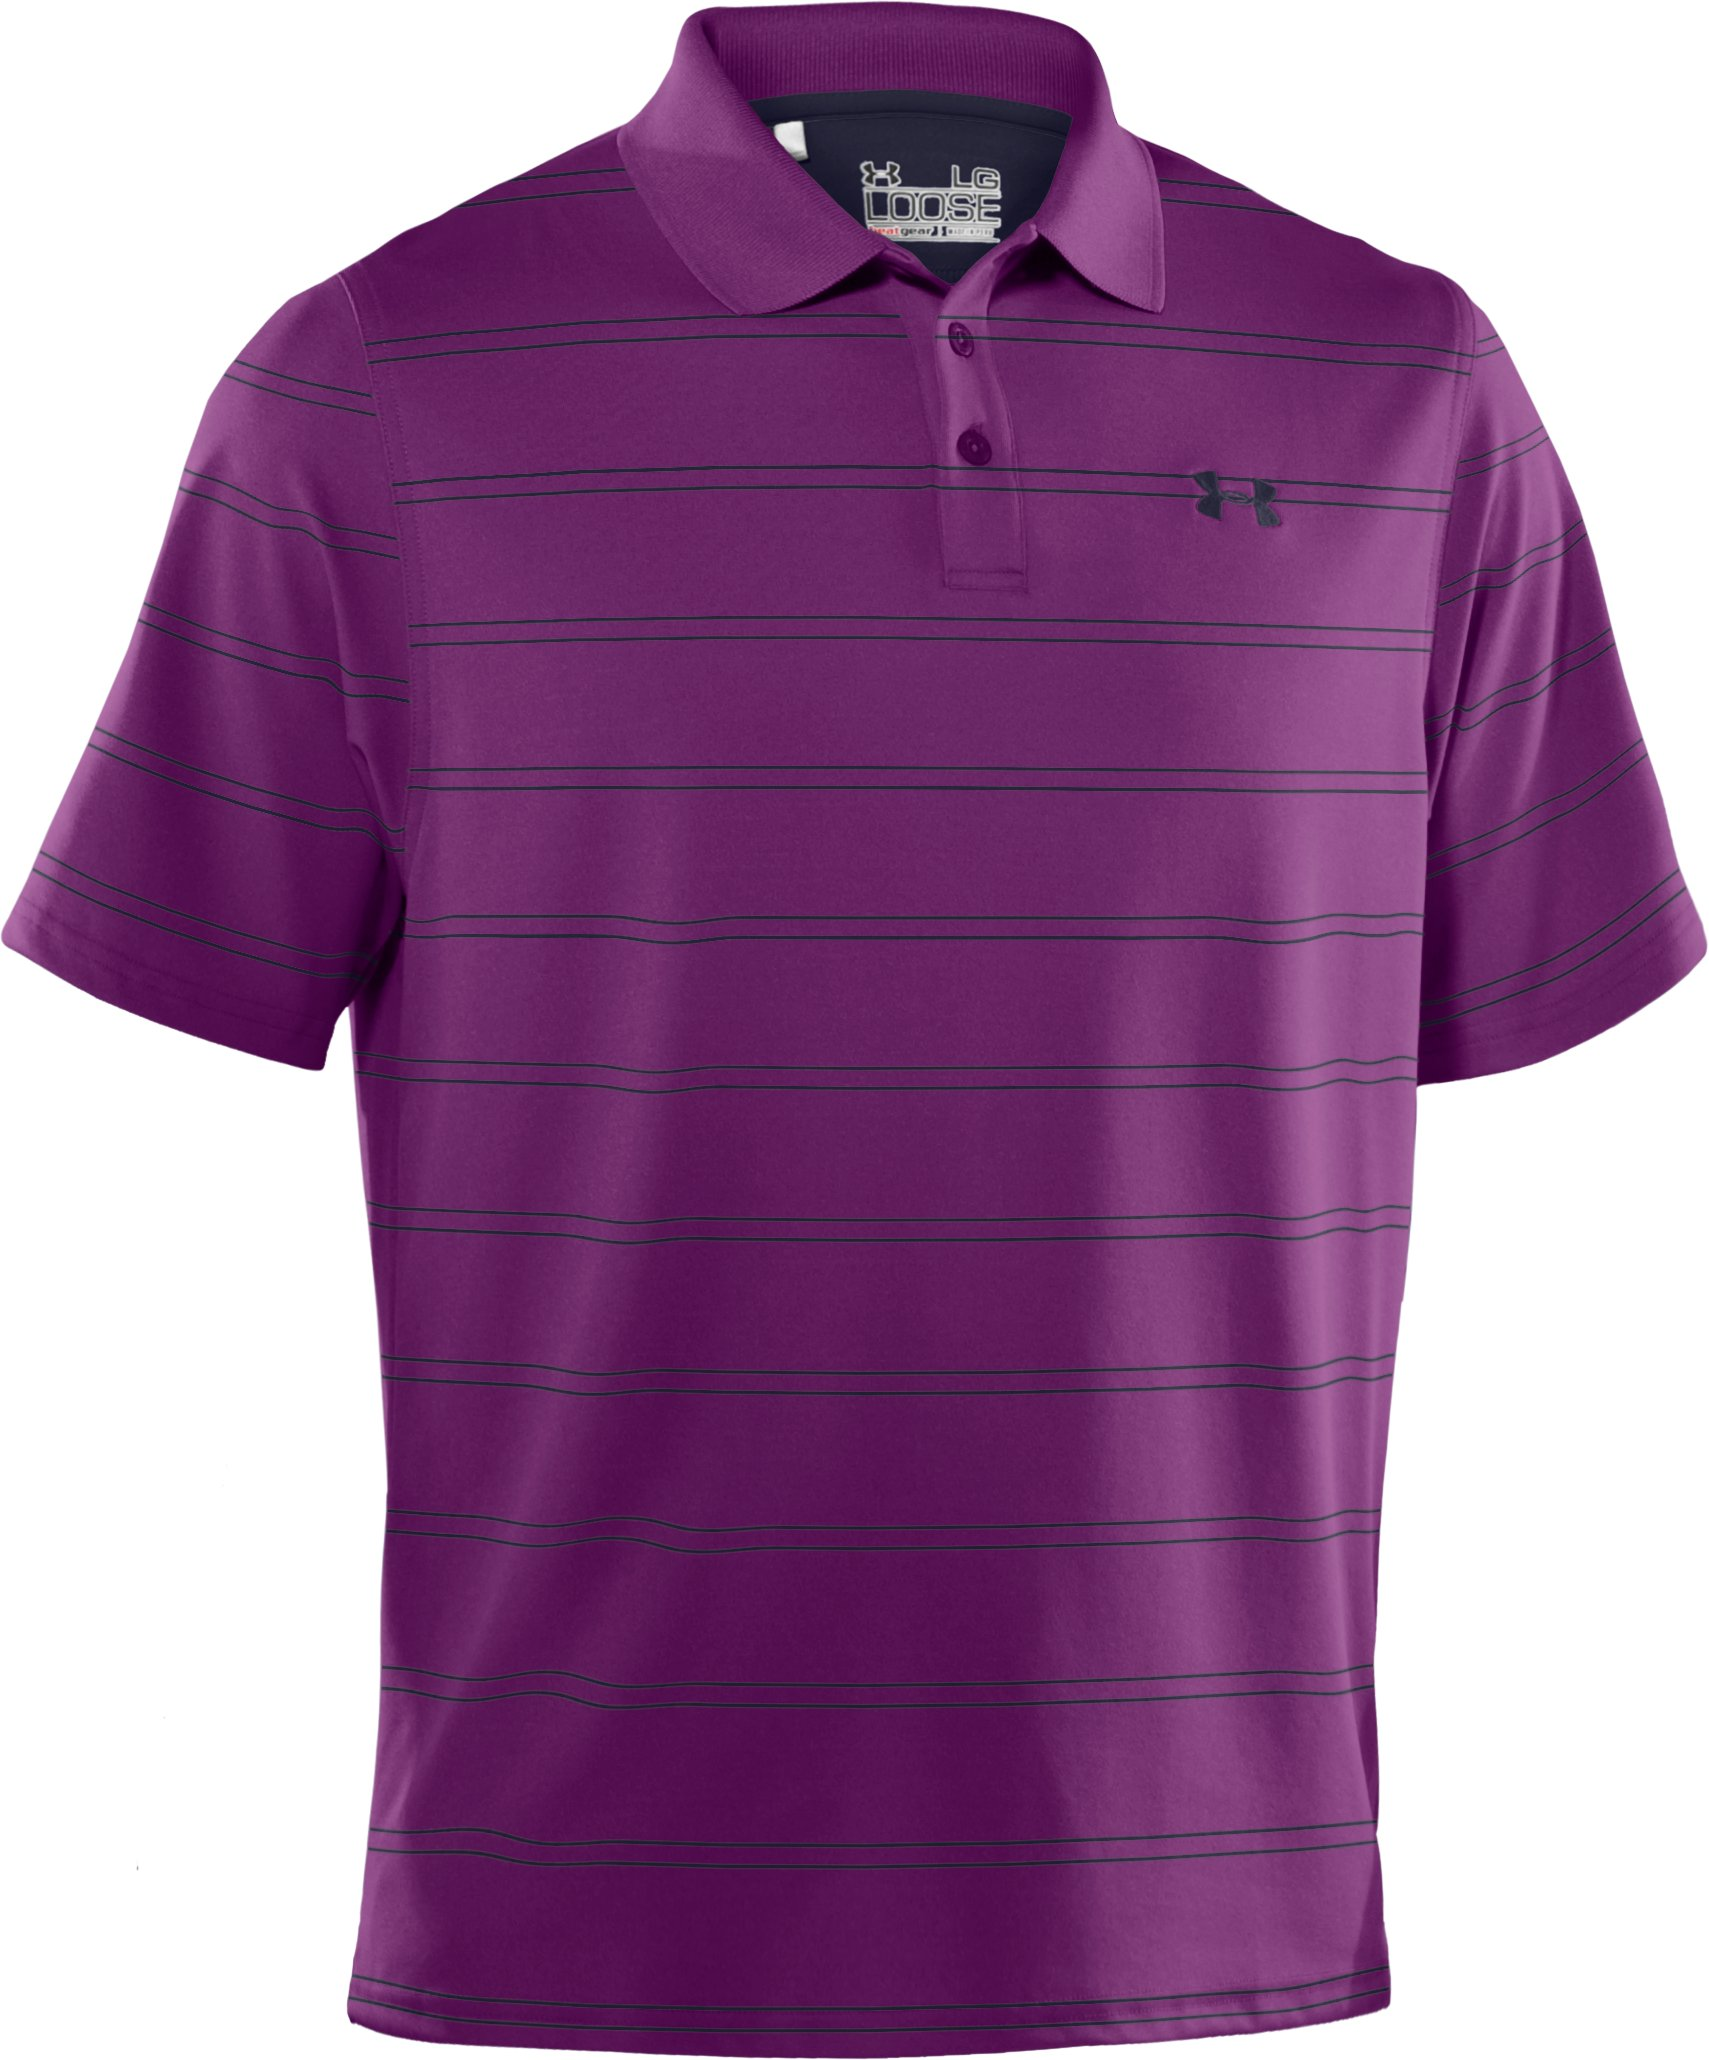 Men's UA Draw Stripe Pique Polo 2.0, Cassis